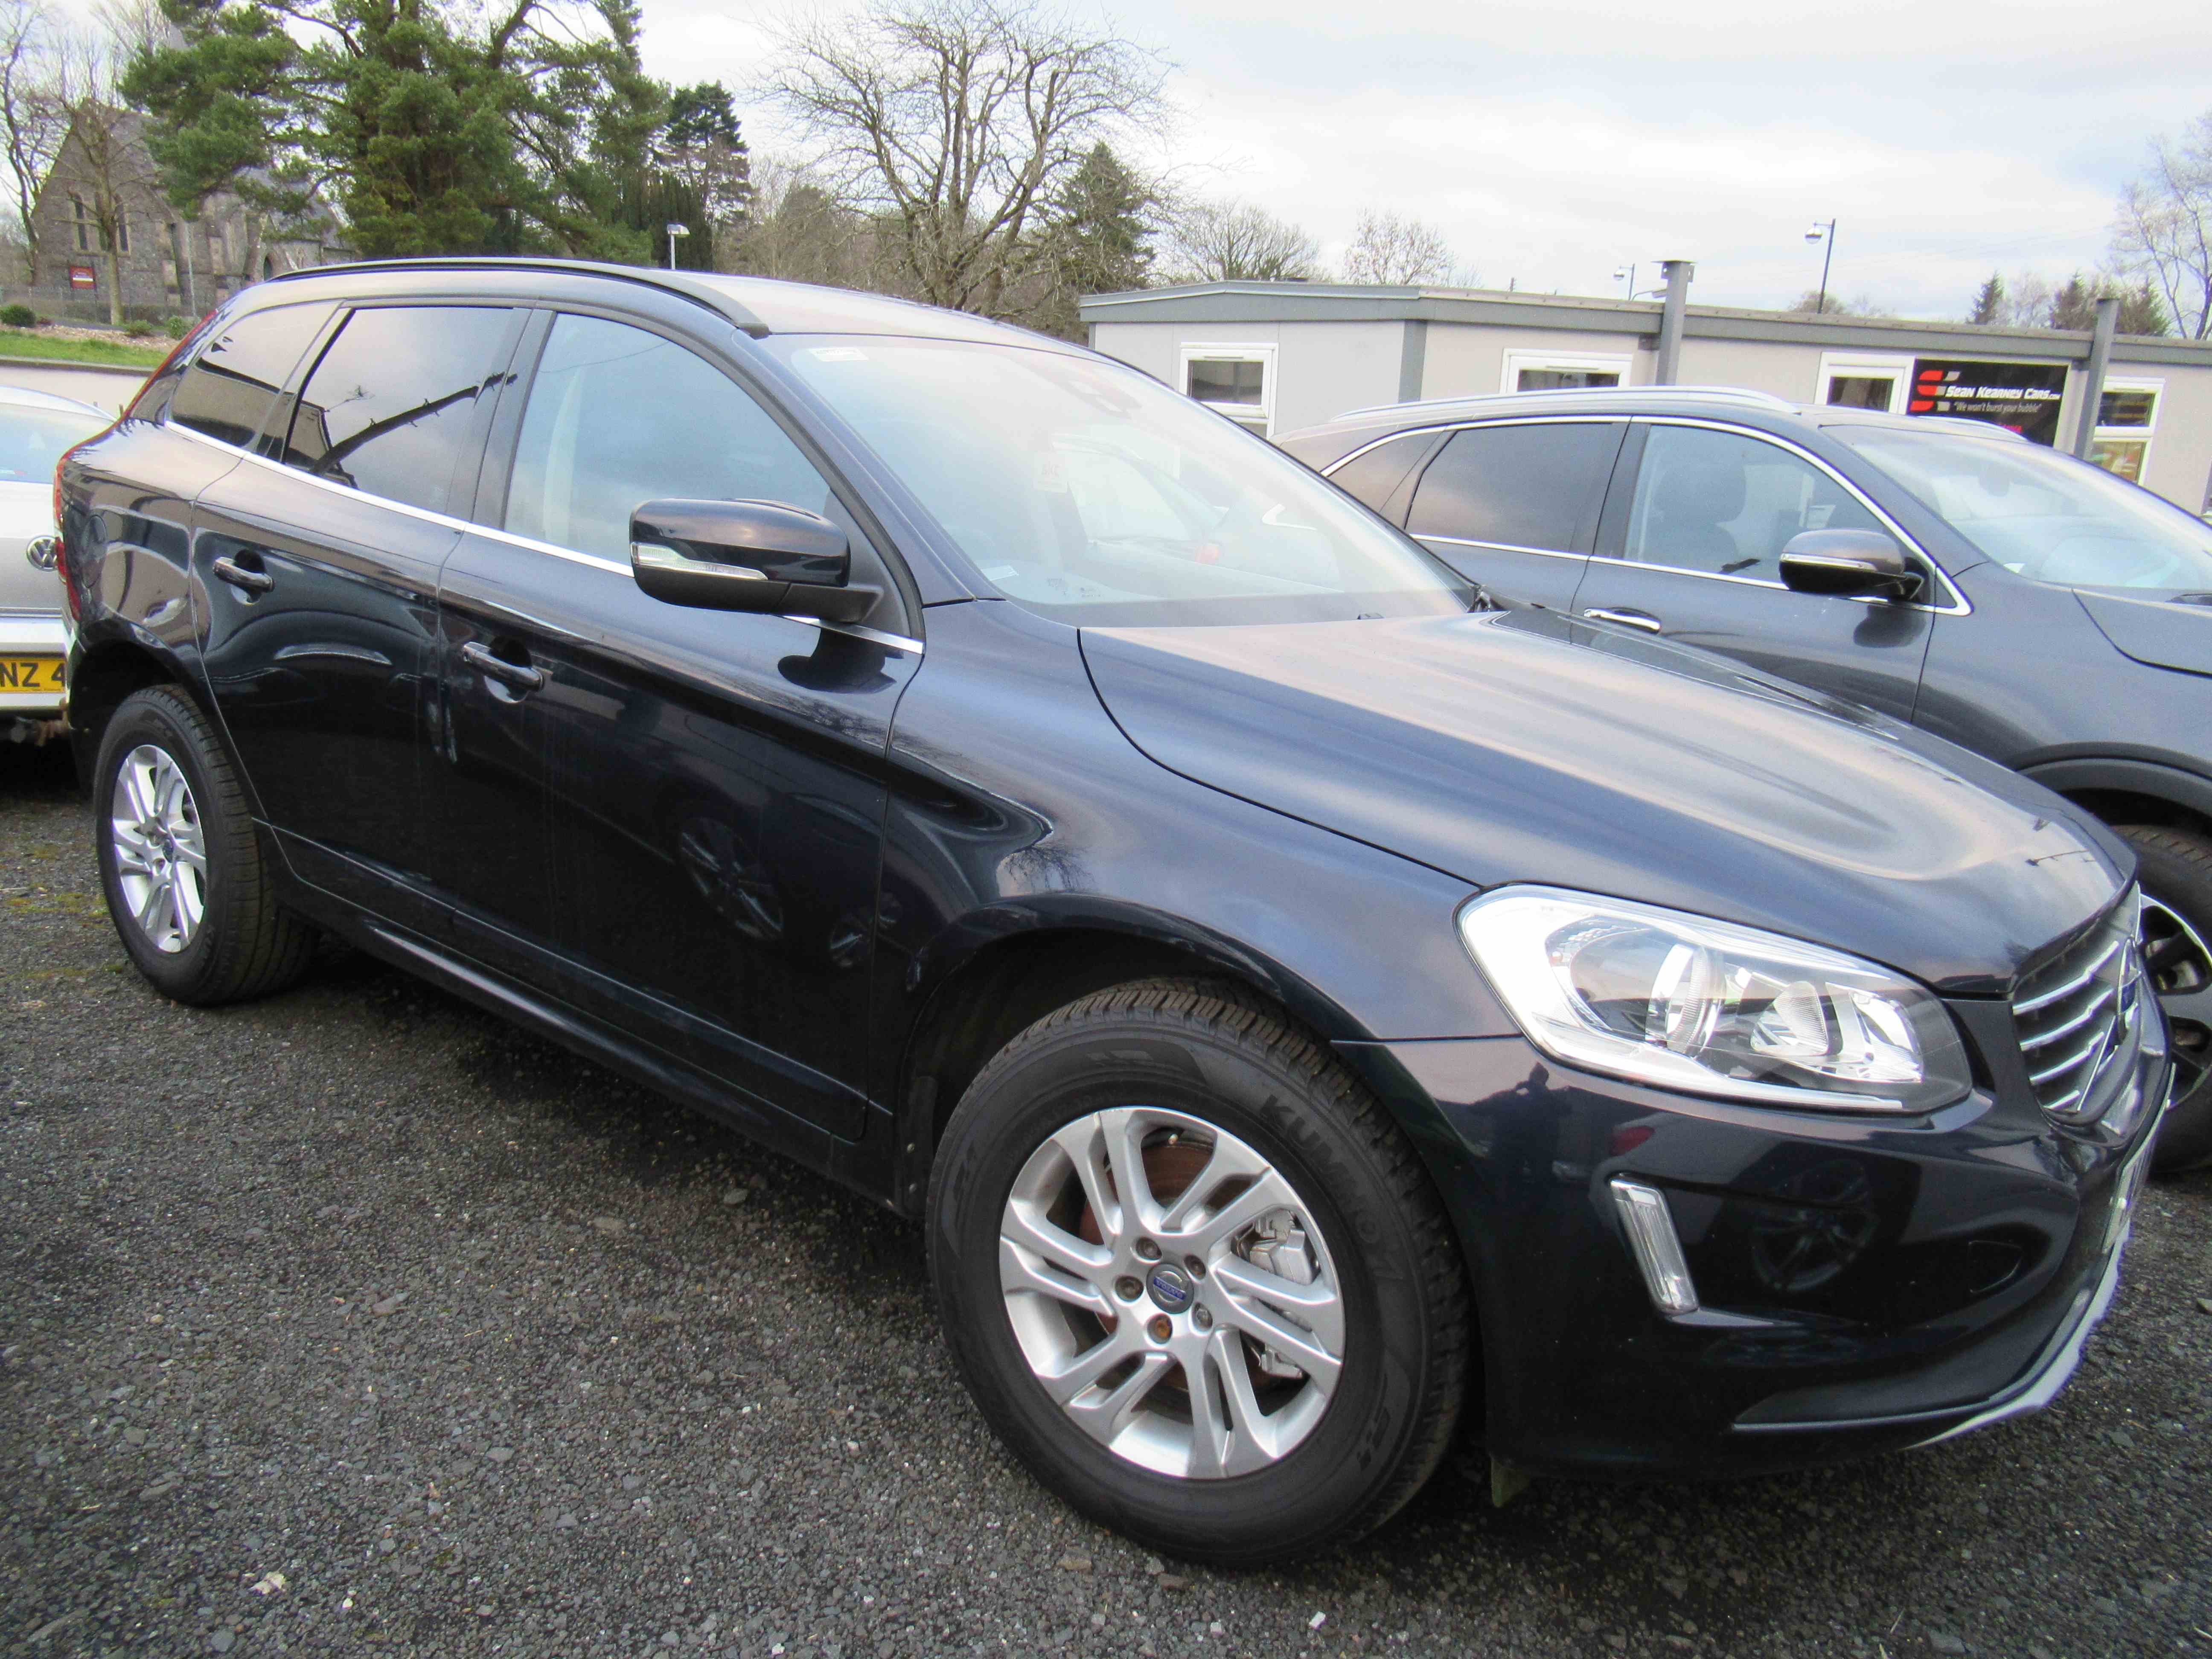 Locally owned the past 3 years, immaculate condition inside and out, call Sean on 07970936458 or 02879401371 to arrange a test drive and for a keen finance quote from Northridge Finance, Motonovo or Santander Consumer